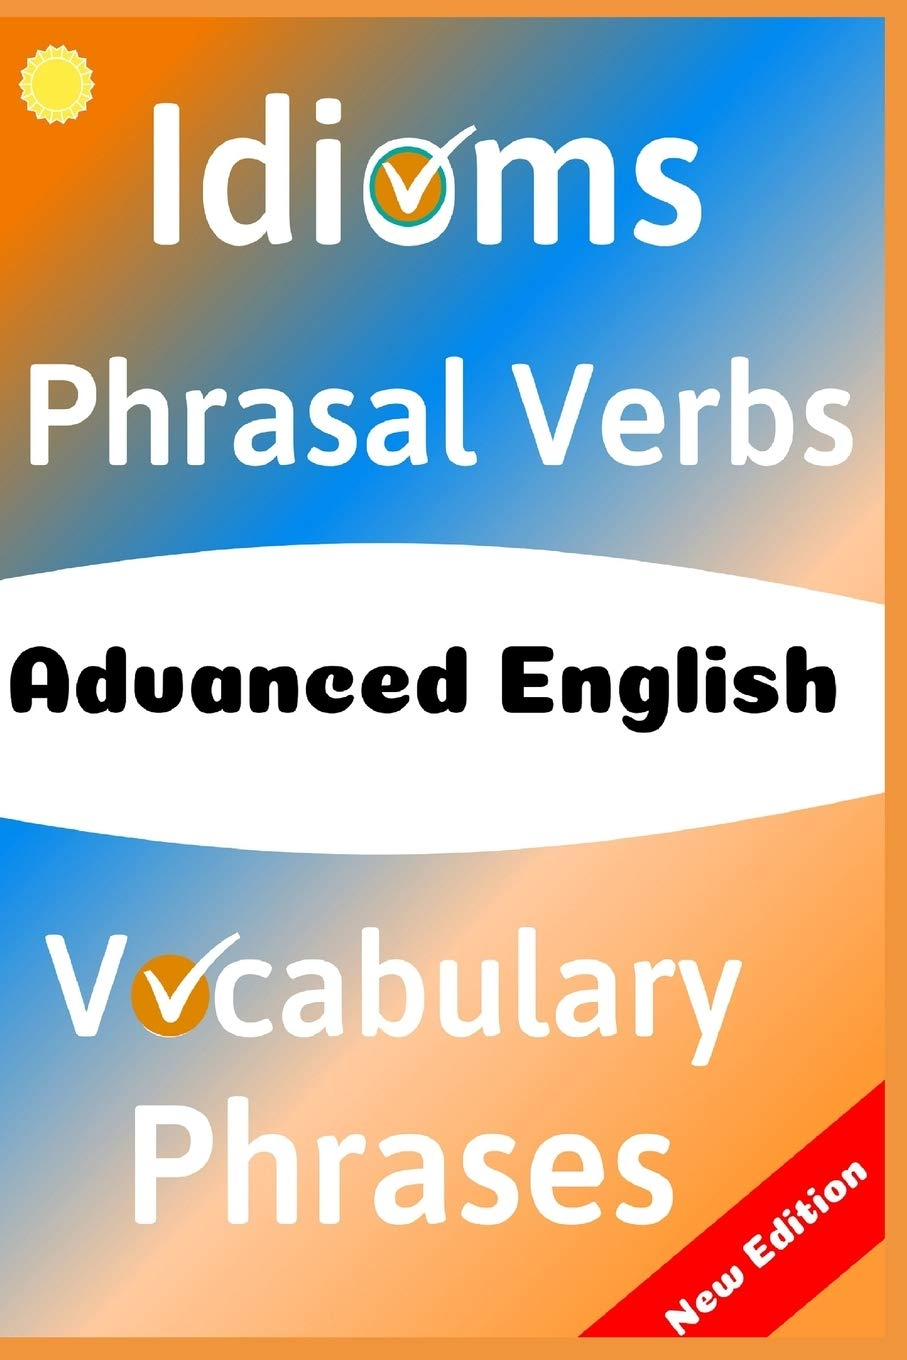 ADVANCED ENGLISH  Idioms Phrasal Verbs Vocabulary And Phrases  700 Expressions Of Academic Language  The Ultimate Guide Book Band 4